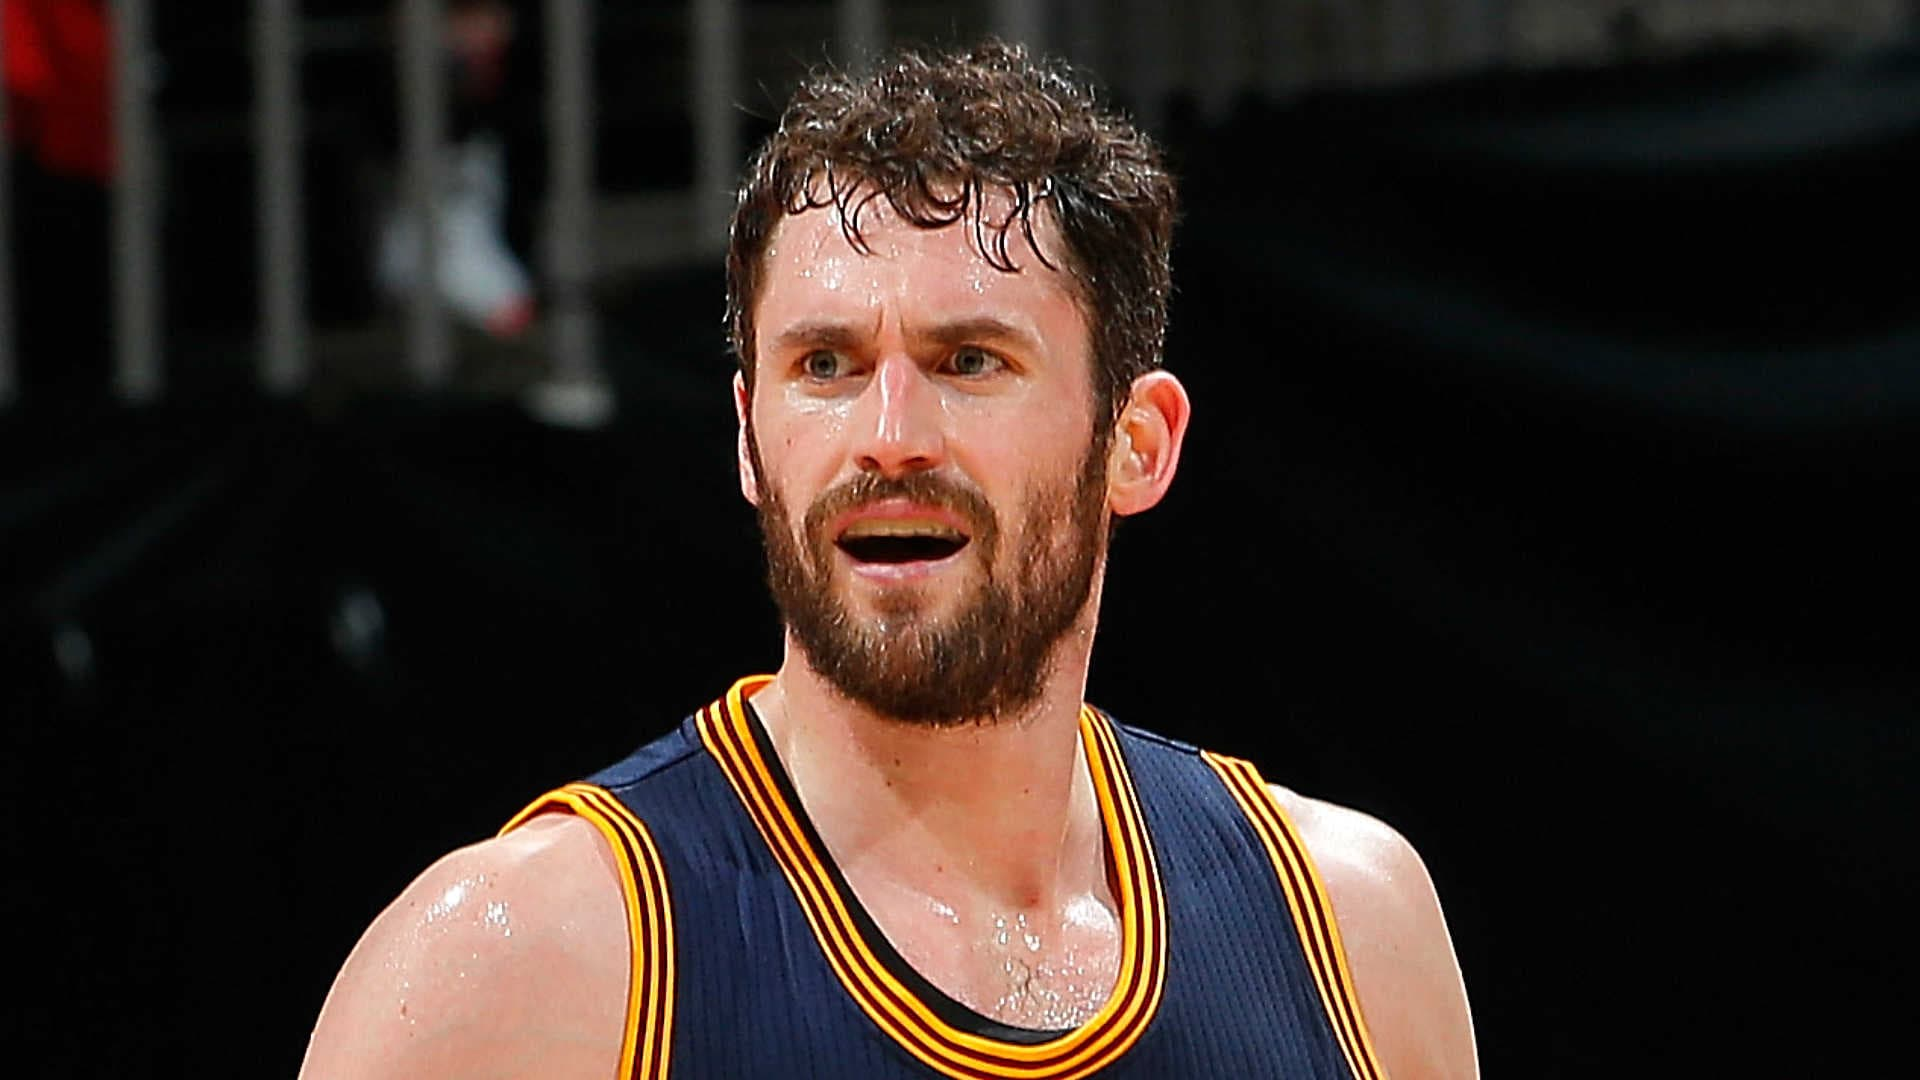 kevin love beard photo - 1